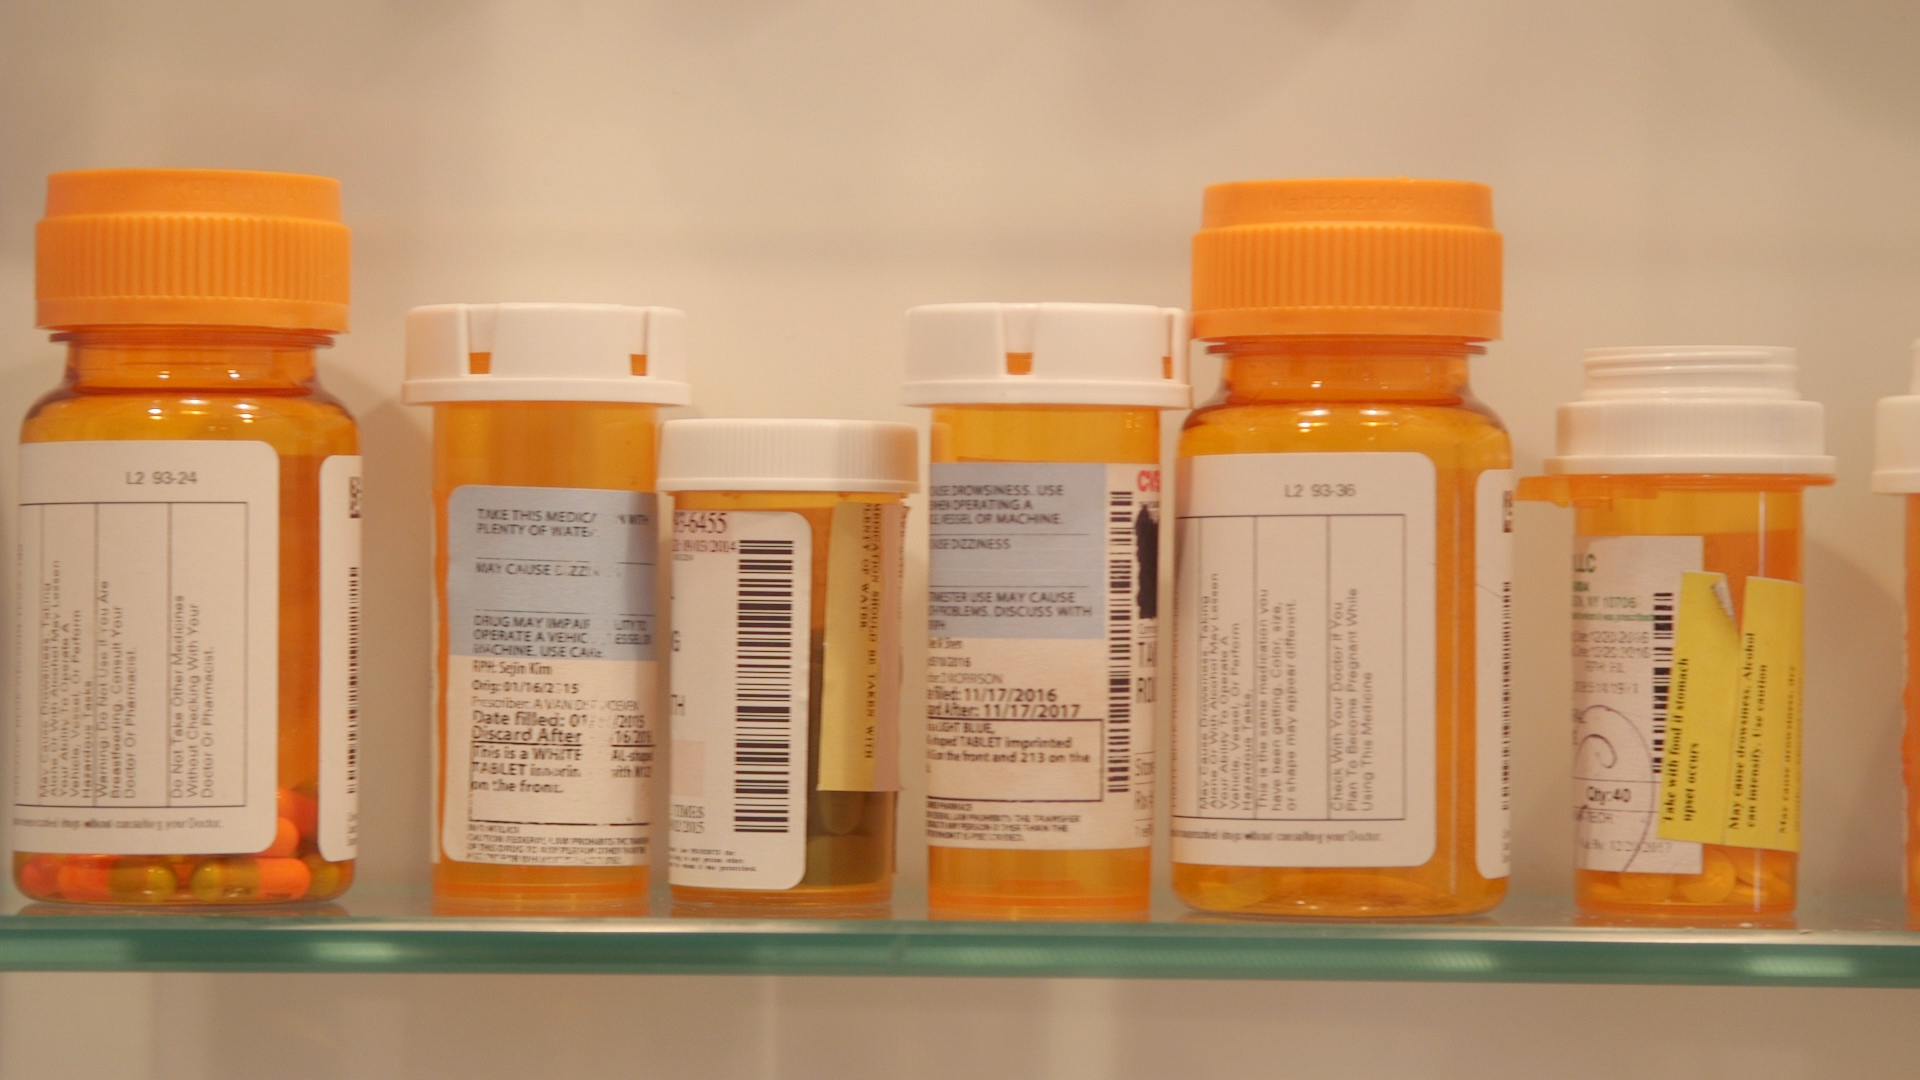 How To Get Rid Of Unused Medication